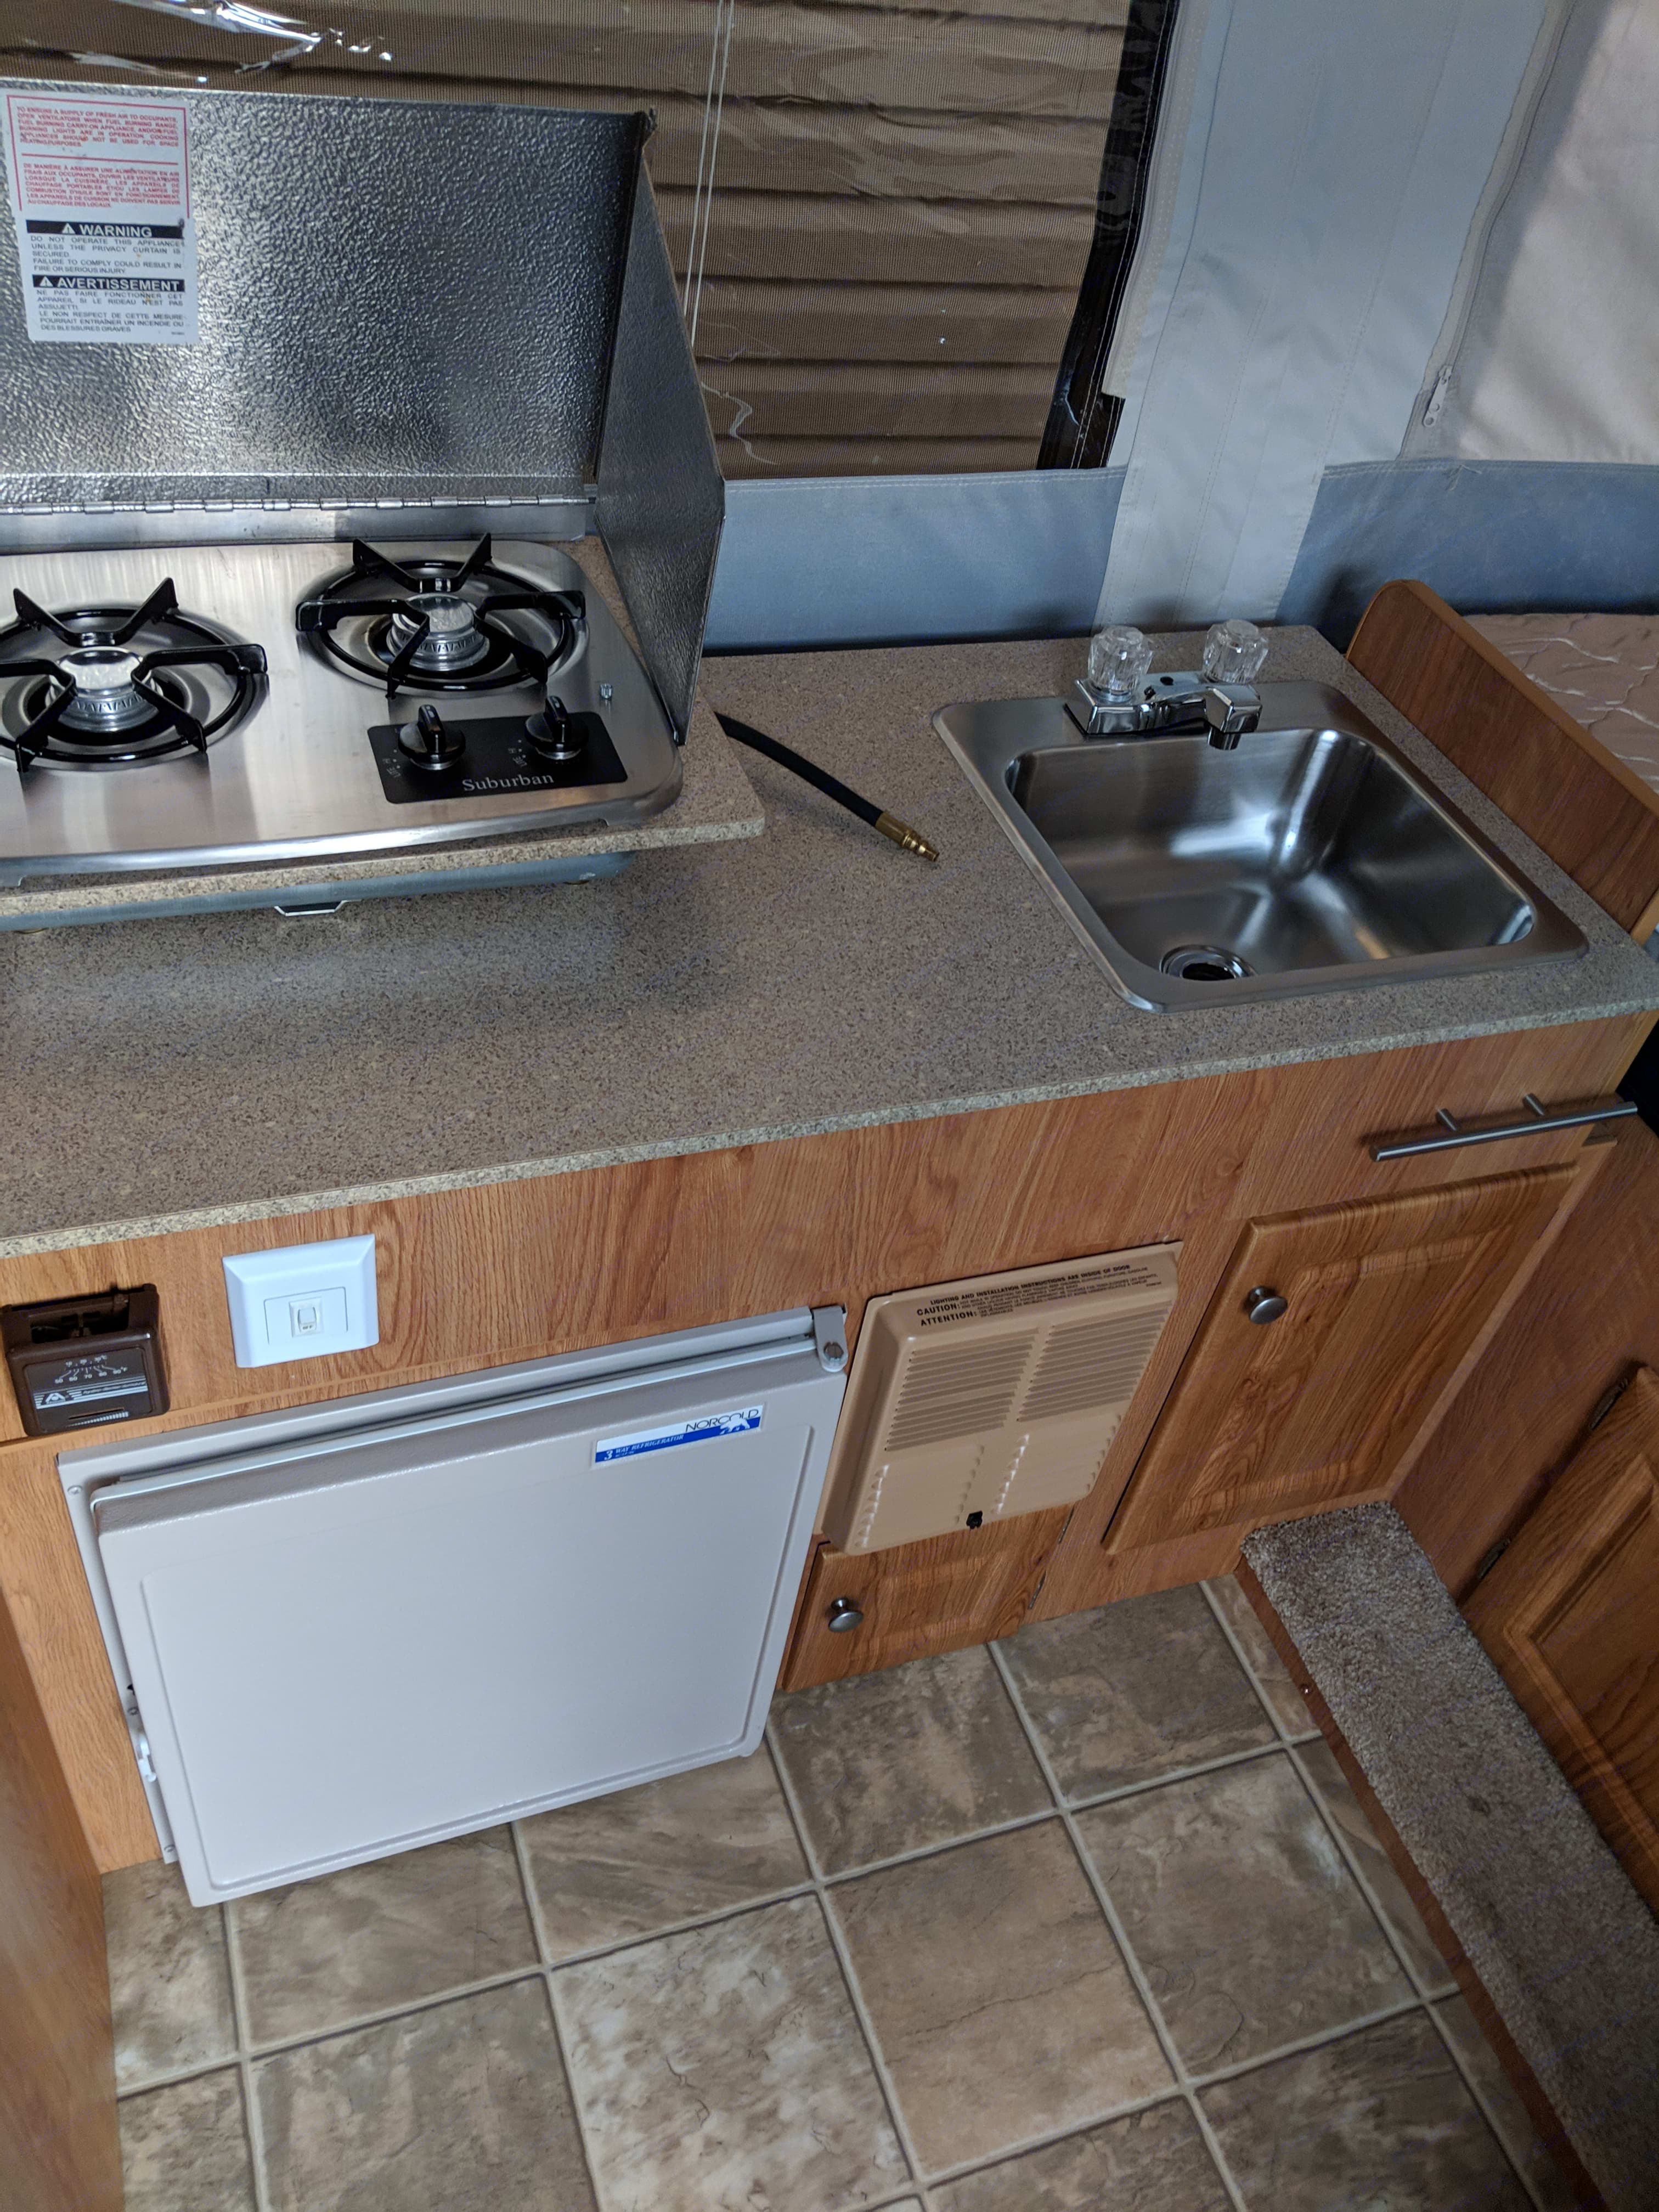 Fridge, Stove top and sink. Jayco Jay Series 2008